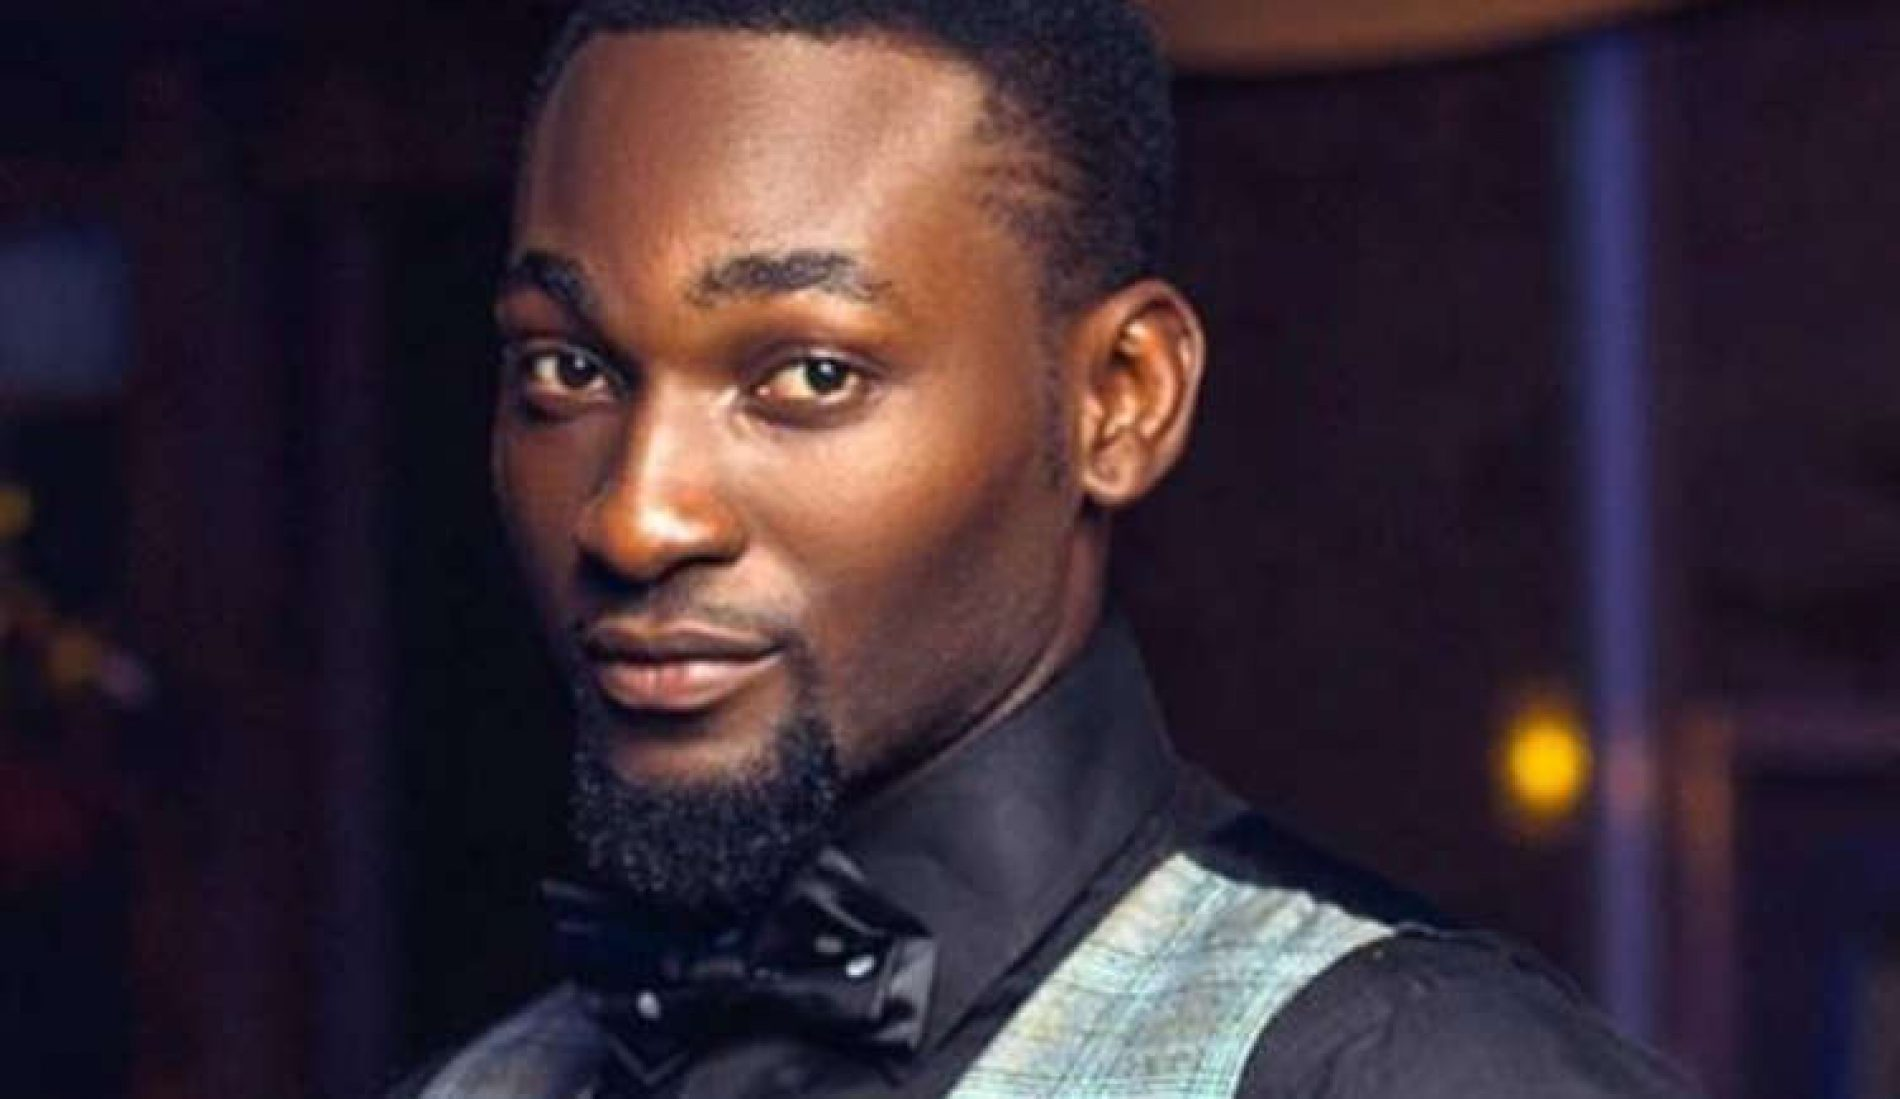 Gbenro Ajibade makes an instagram post with a rainbow amid marriage crisis rumours, and unleashes speculation about his sexuality